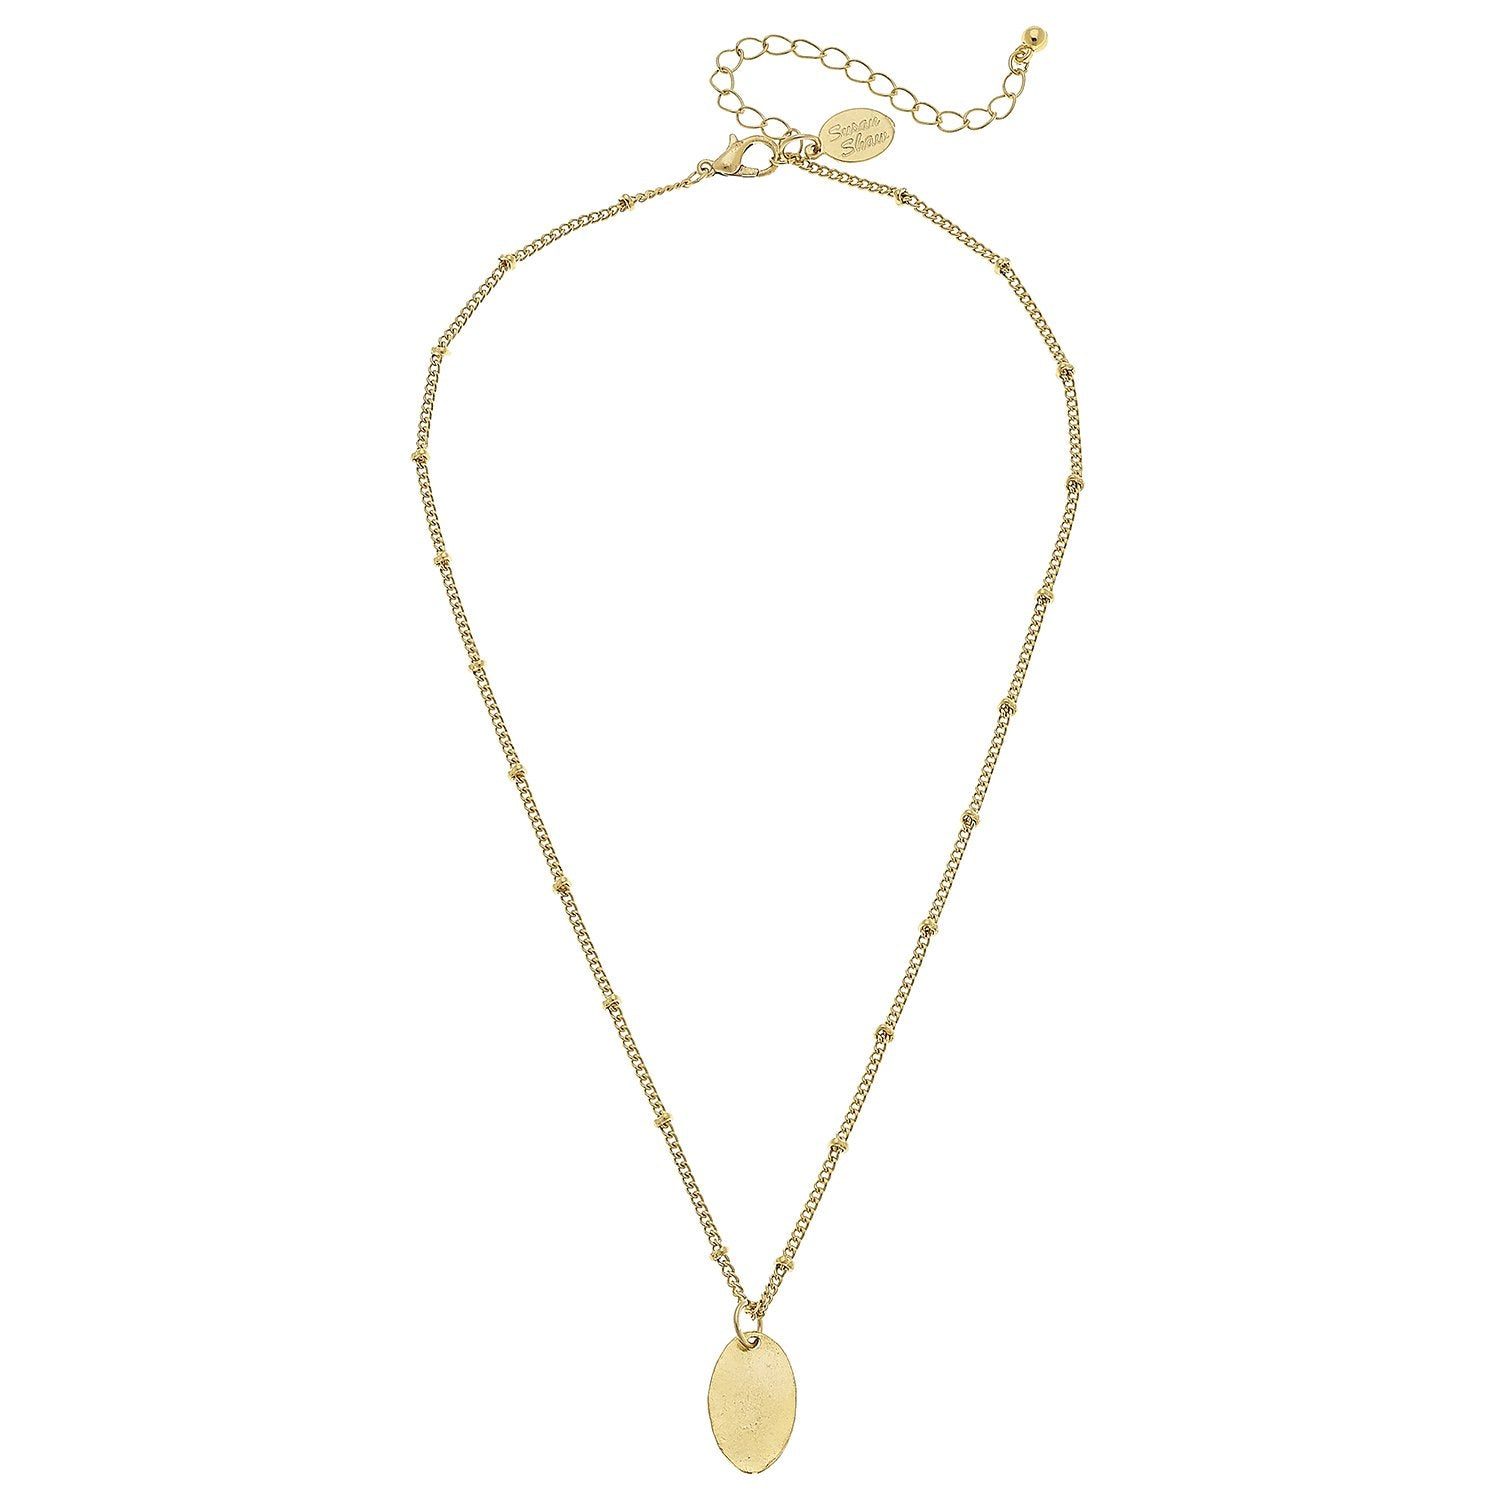 Dainty Oval Pendant Necklace